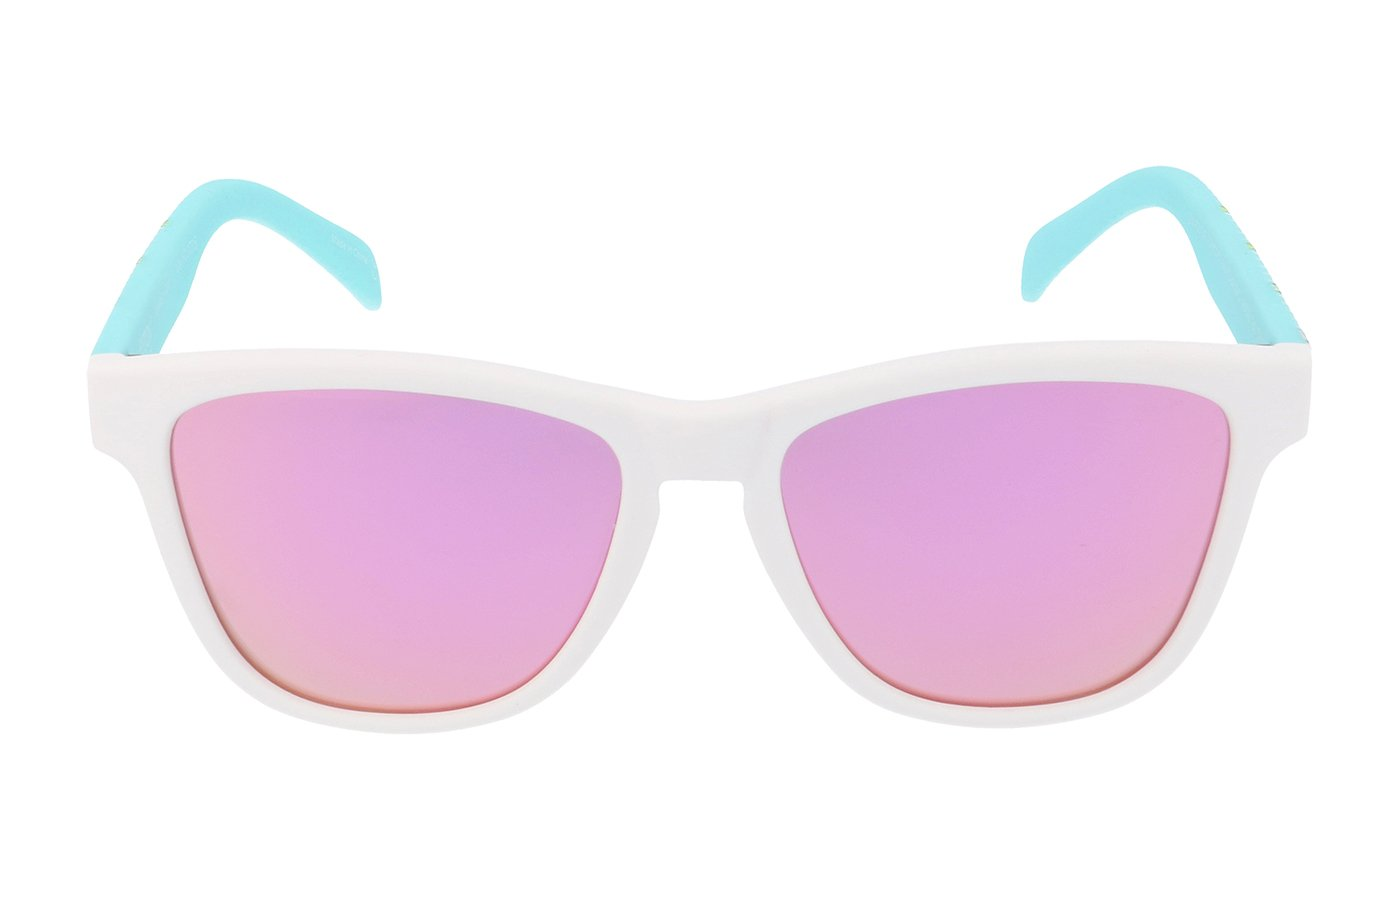 POOP PINK EMOJI SUNGLASSES FOR KIDS